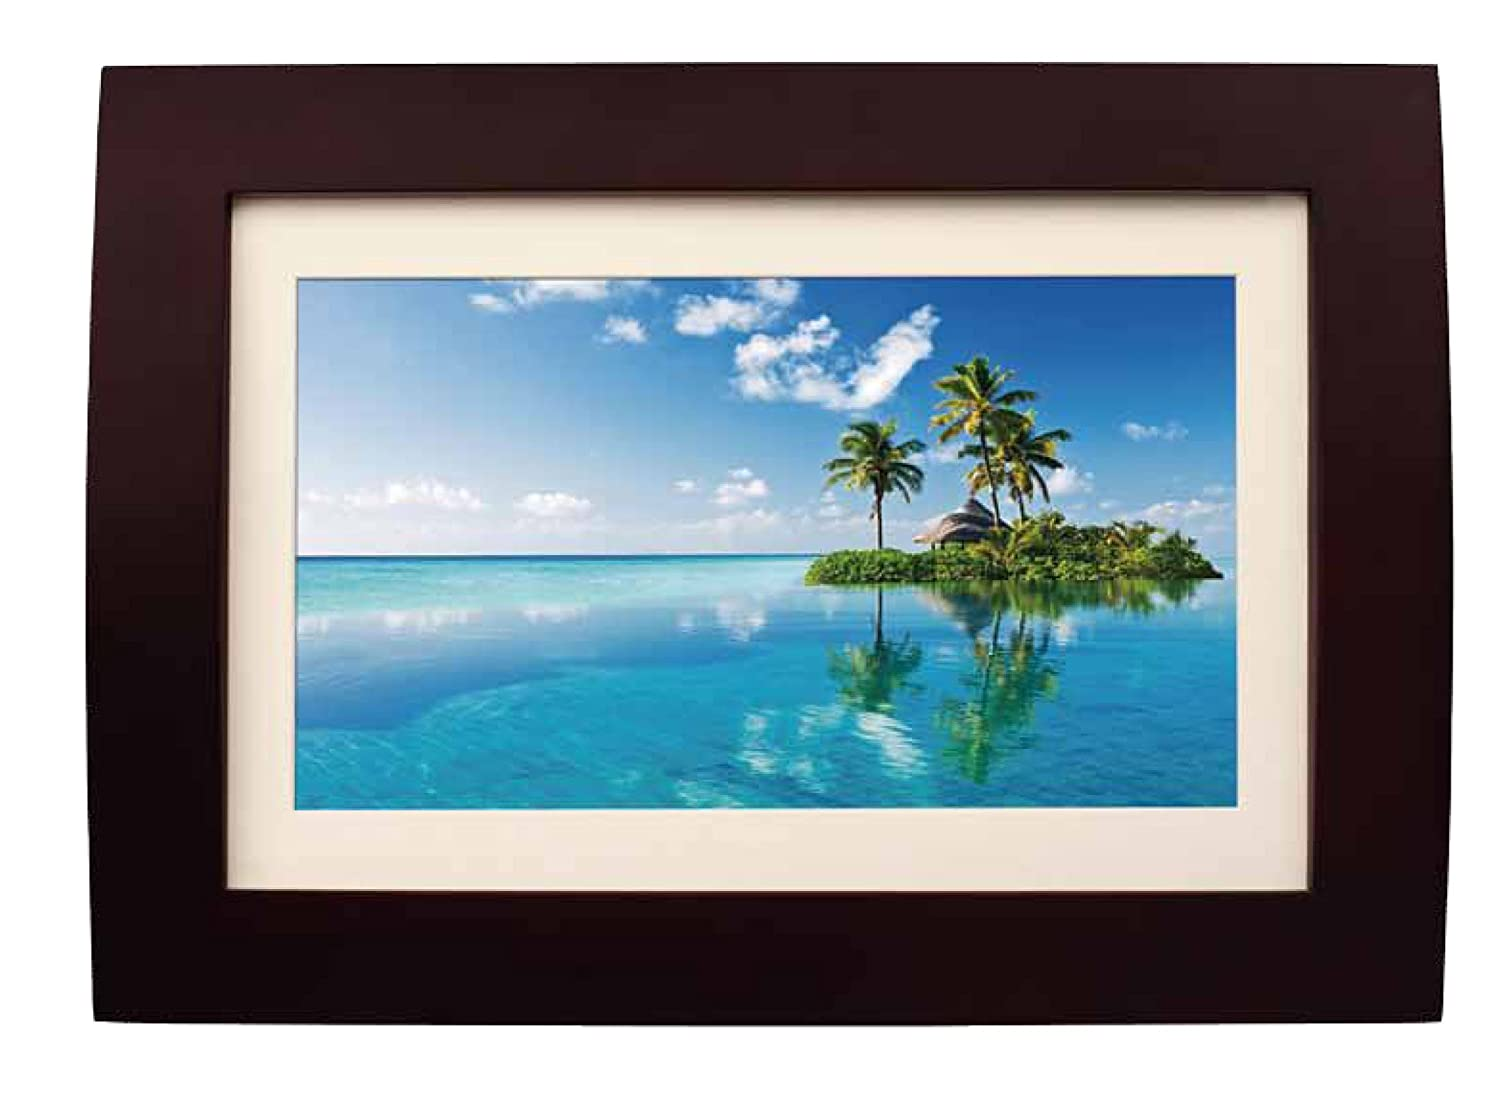 Amazon sylvania sdpf1089 10 inch led multimedia wood amazon sylvania sdpf1089 10 inch led multimedia wood finished digital photo frame with remote control and 2 gb built in memory brown camera jeuxipadfo Gallery